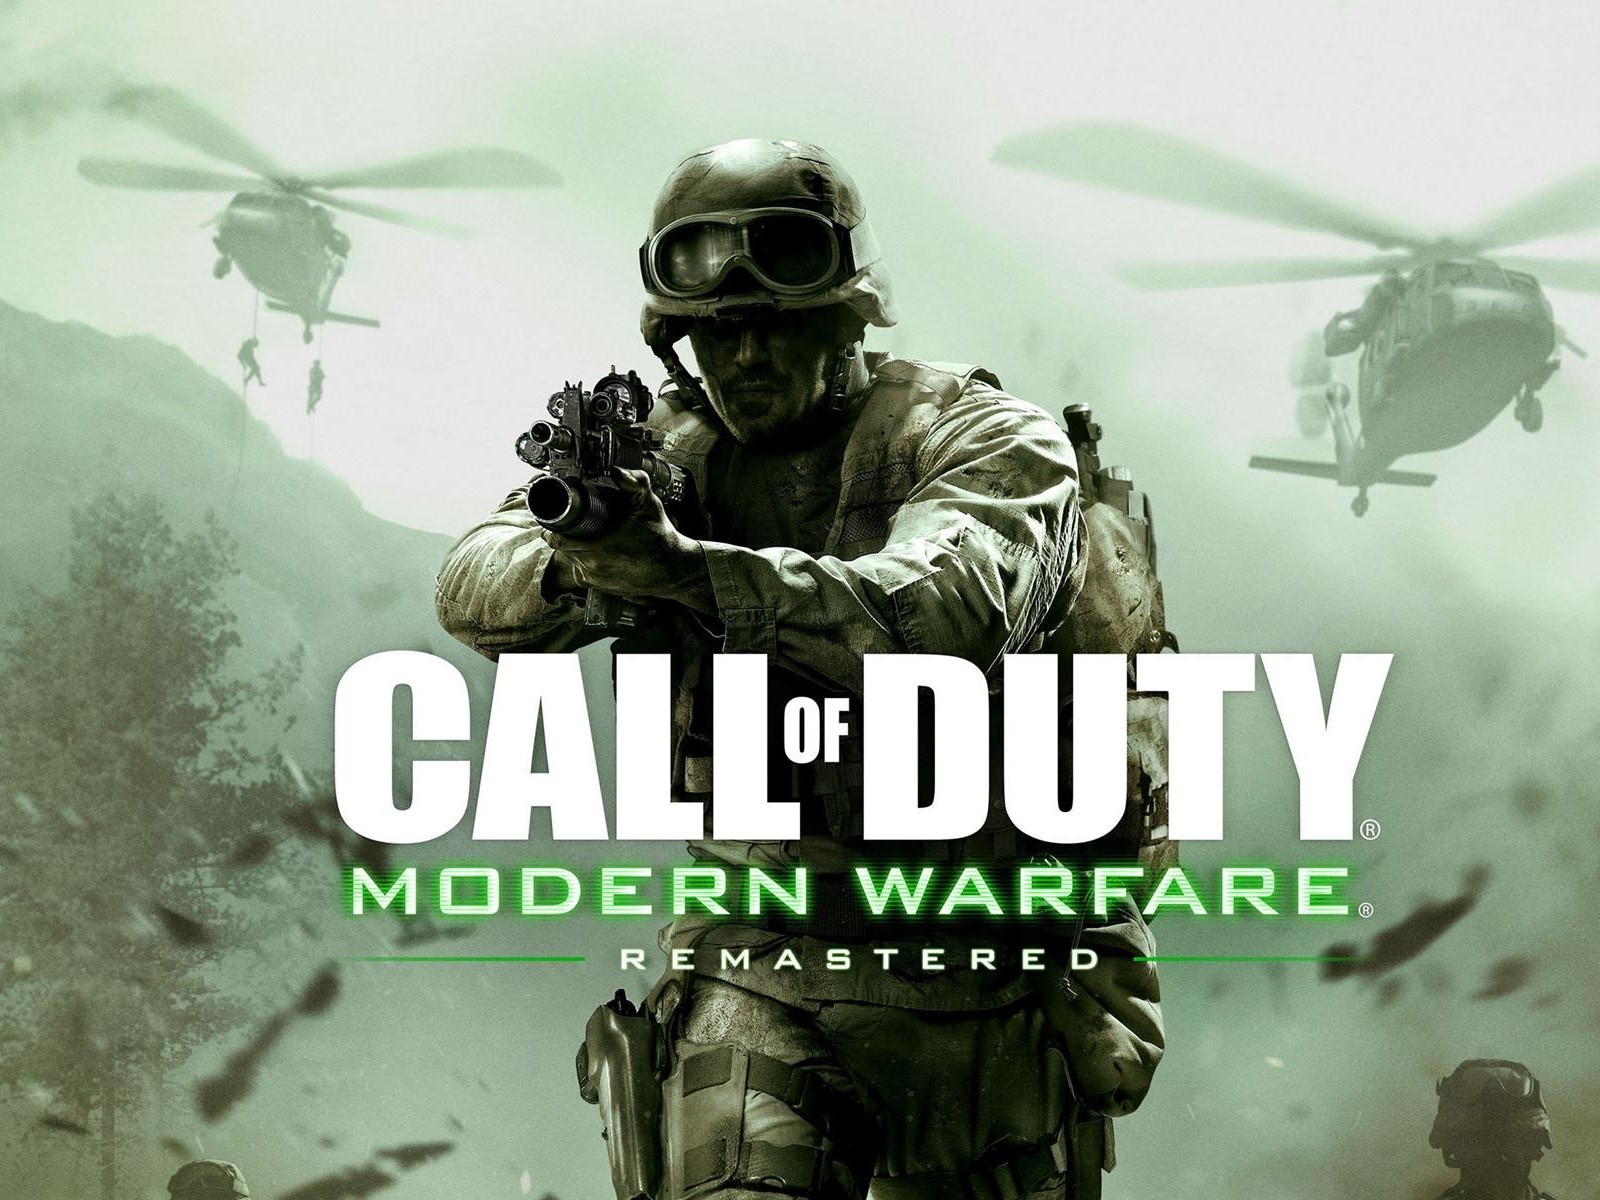 Call of Duty Modern Warfare Remastered Game